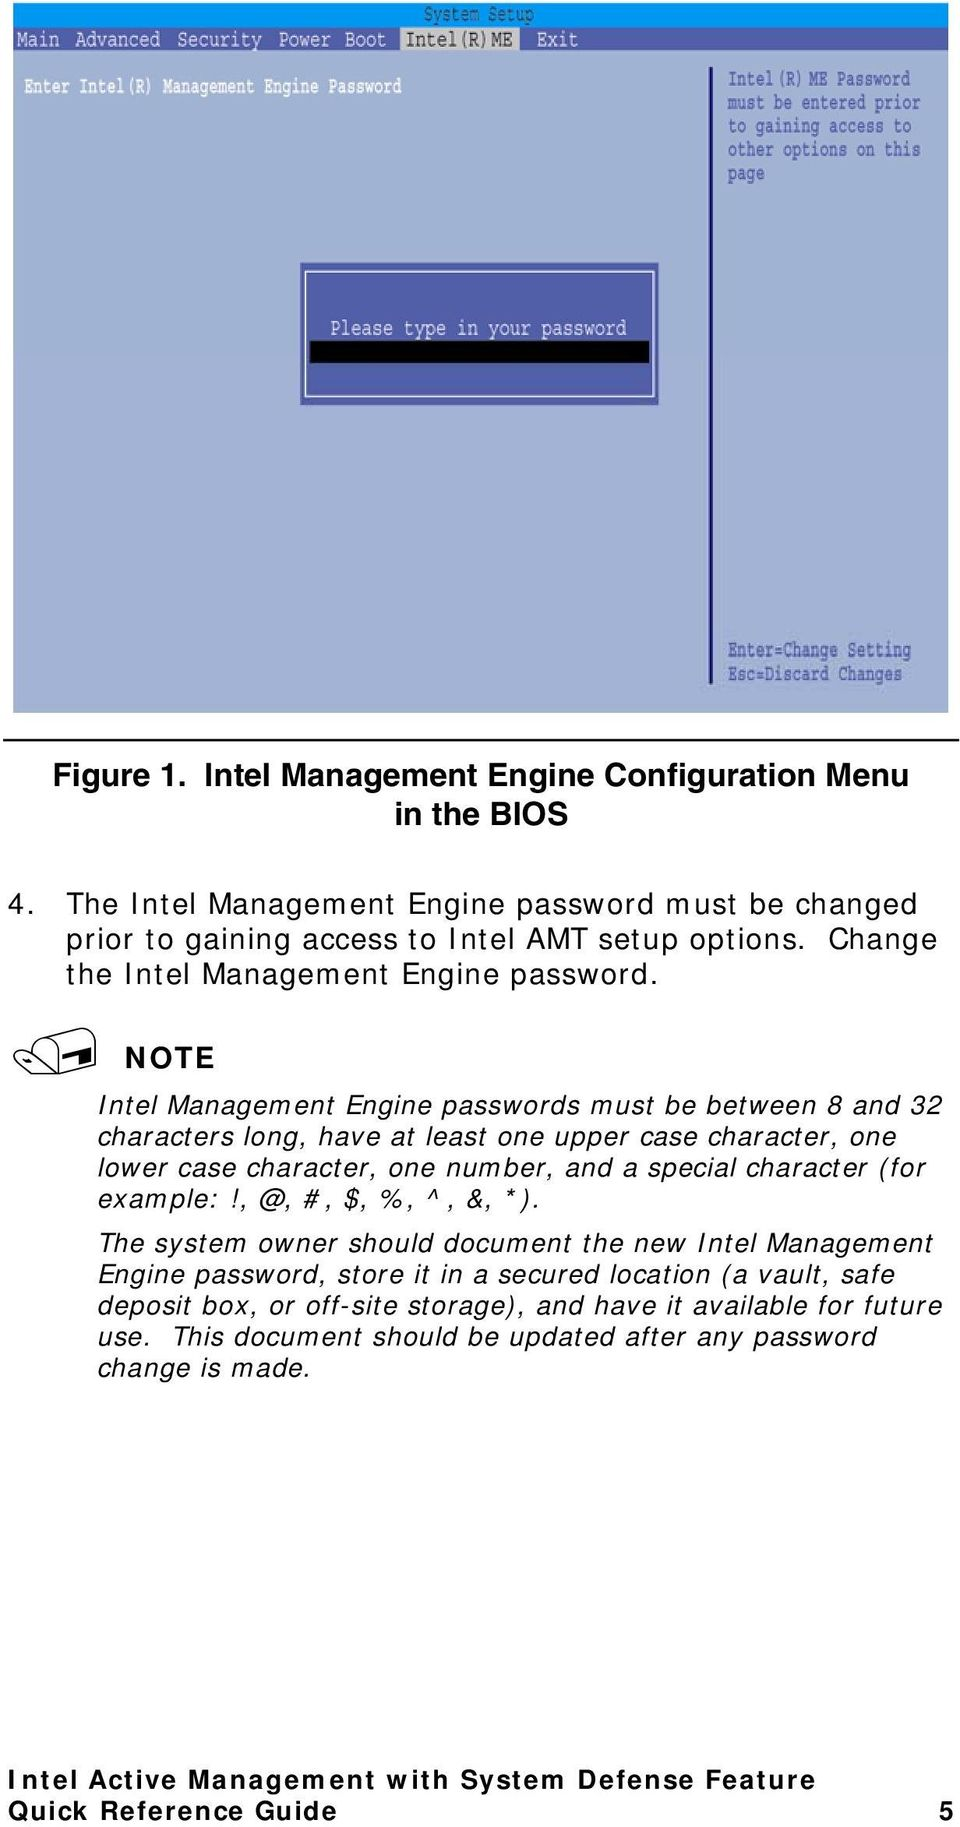 NOTE Intel Management Engine passwords must be between 8 and 32 characters long, have at least one upper case character, one lower case character, one number, and a special character (for